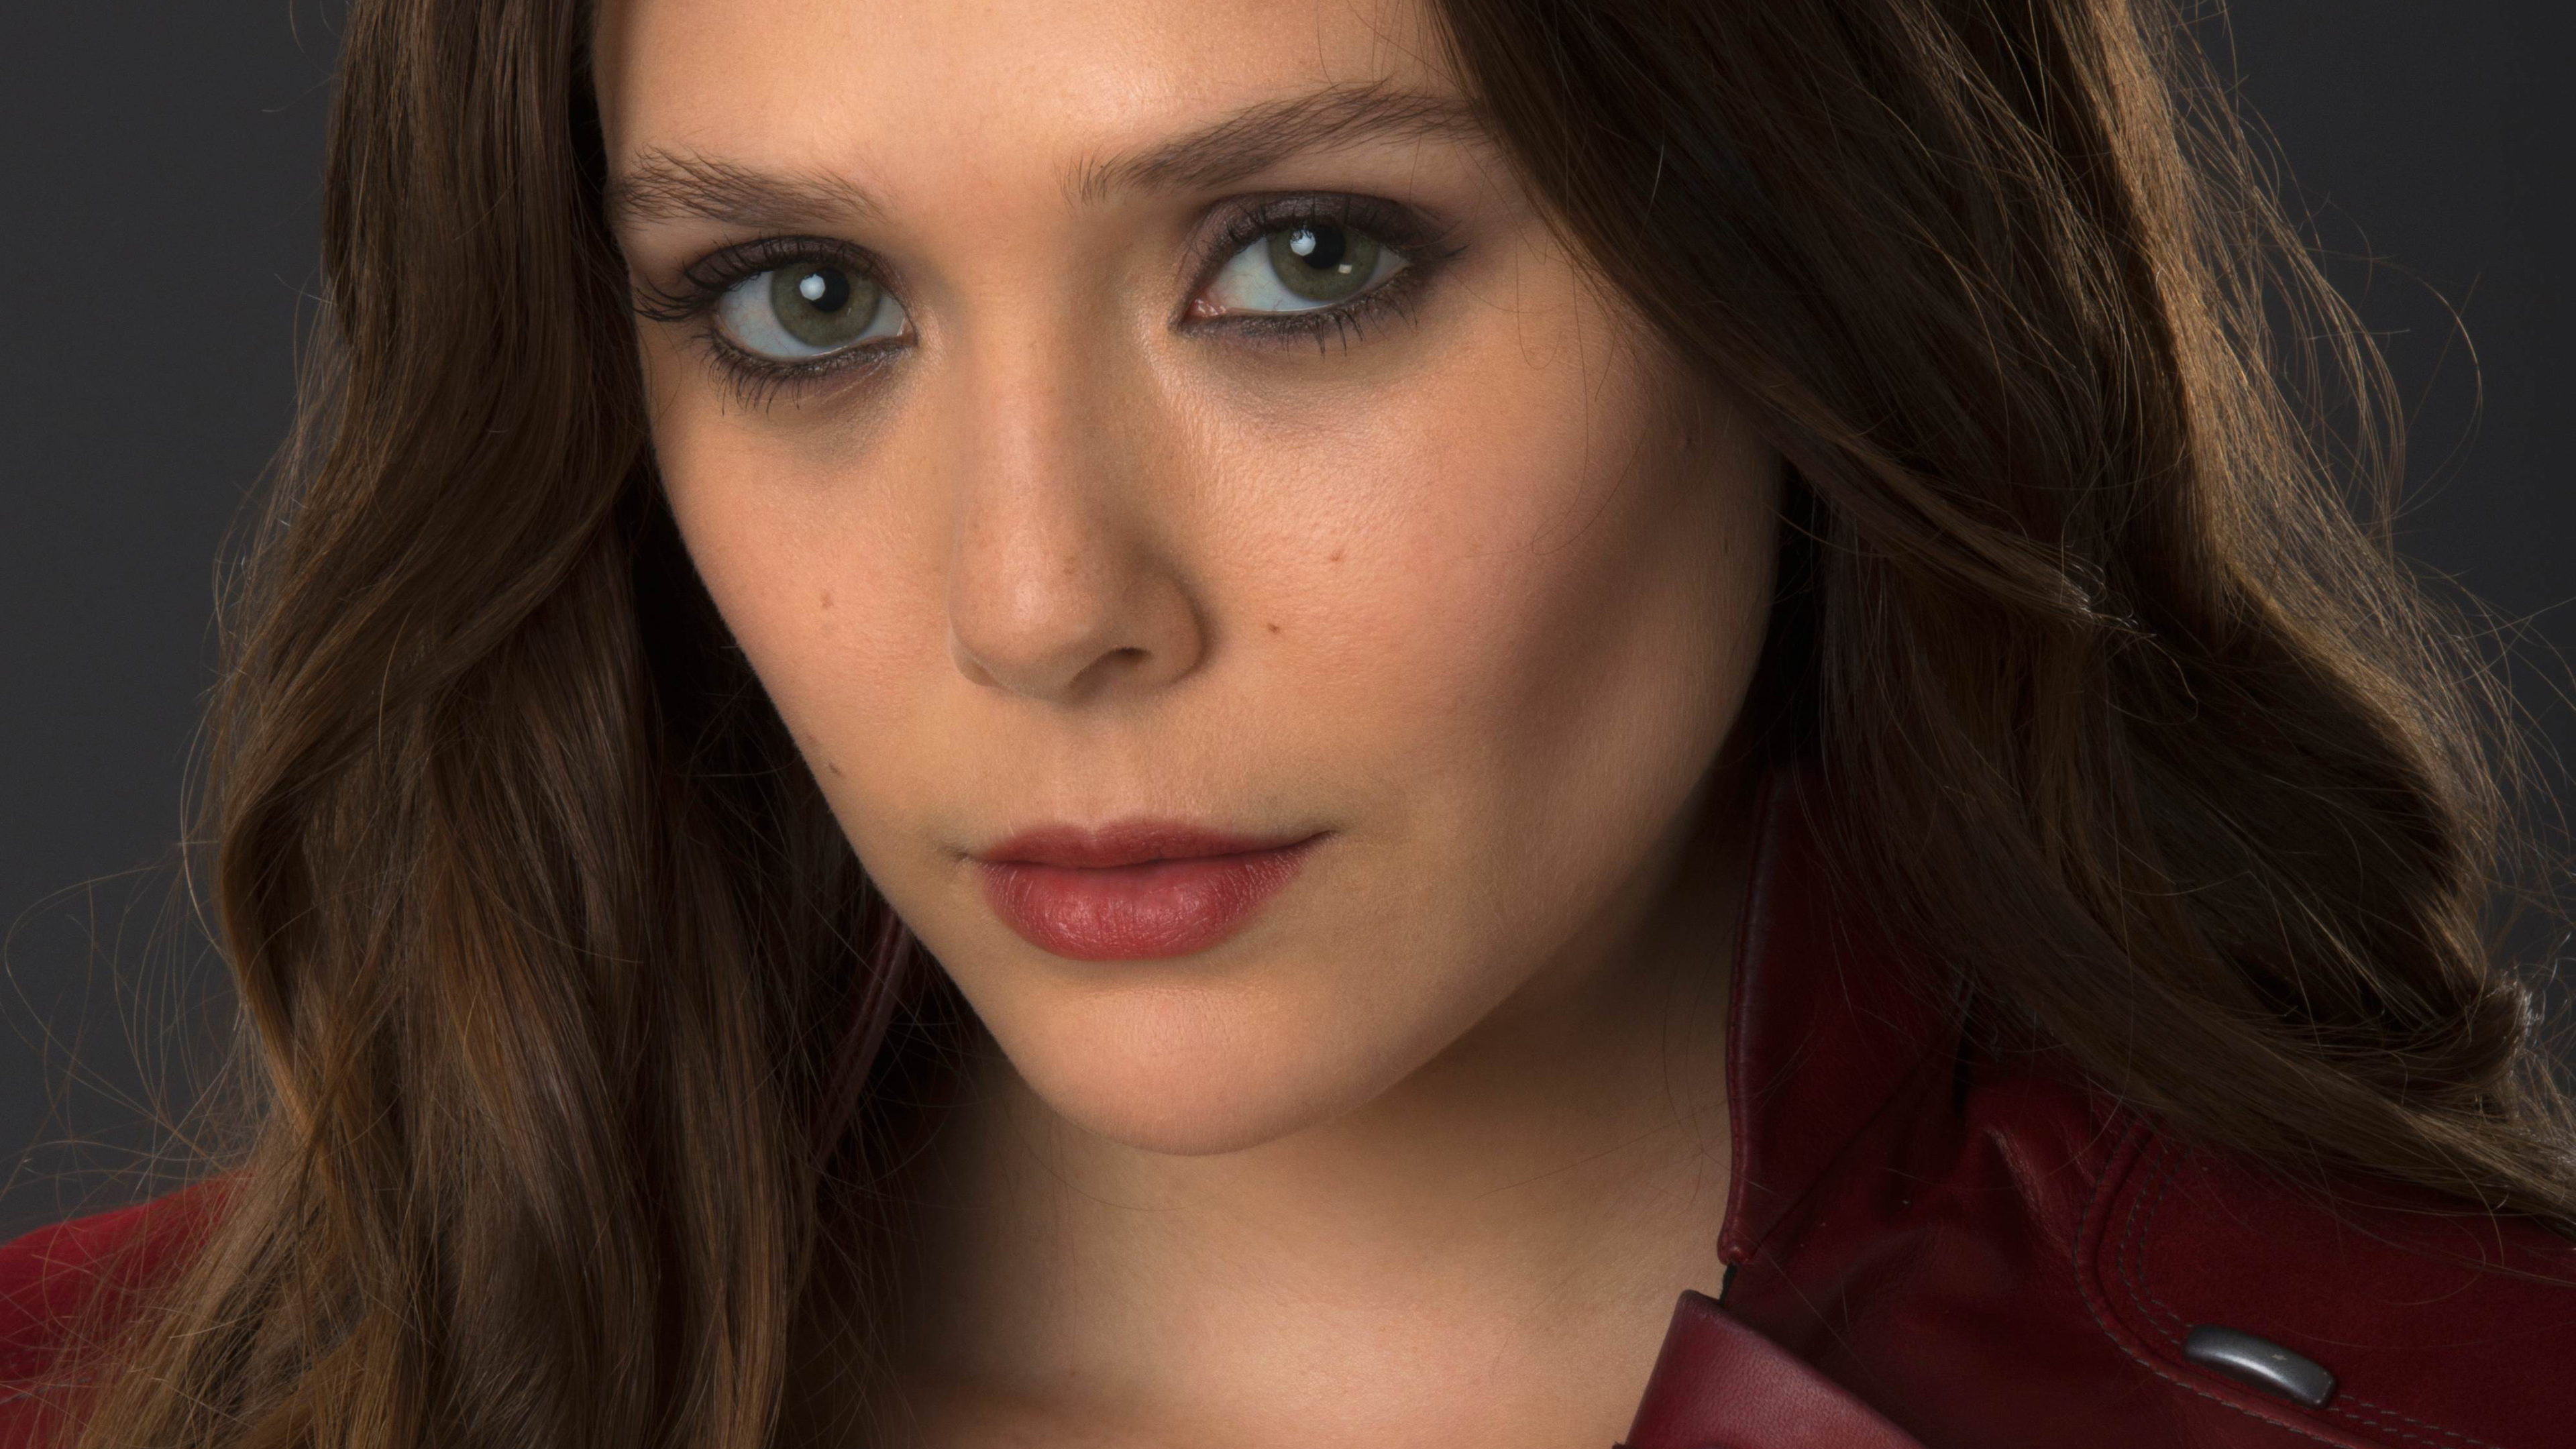 elizabeth olsen 4k 2019 1536943072 - Elizabeth Olsen 4k 2019 - hd-wallpapers, girls wallpapers, elizabeth olsen wallpapers, celebrities wallpapers, 4k-wallpapers